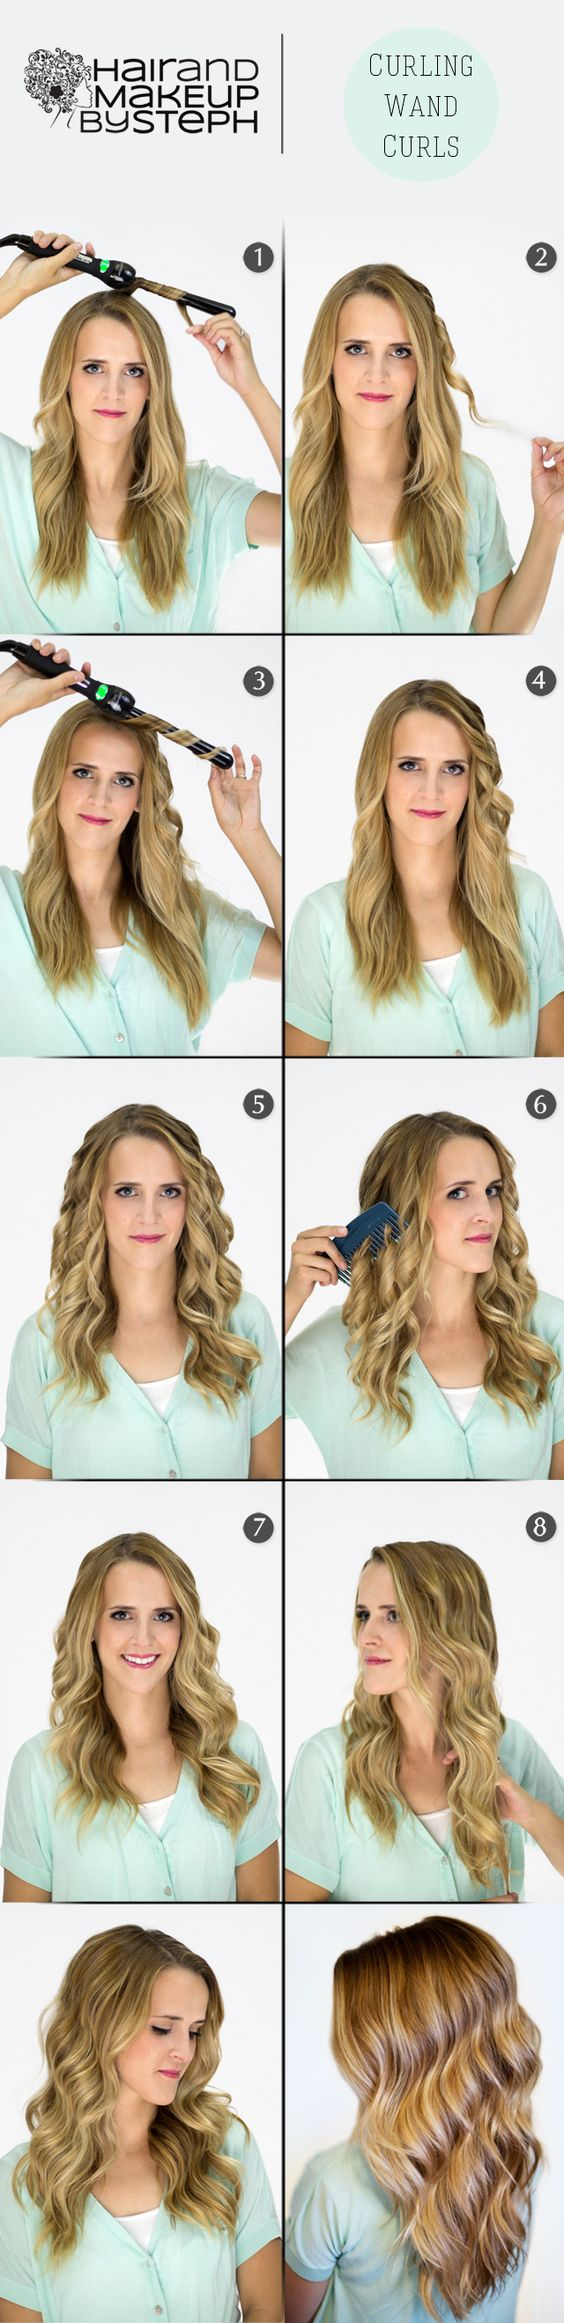 You can do the same thing as shown here but with a regular curling iron too. You don't have to go out and buy a curling wand--just wrap hair around the entire shaft of the iron (clamp included). Viola!